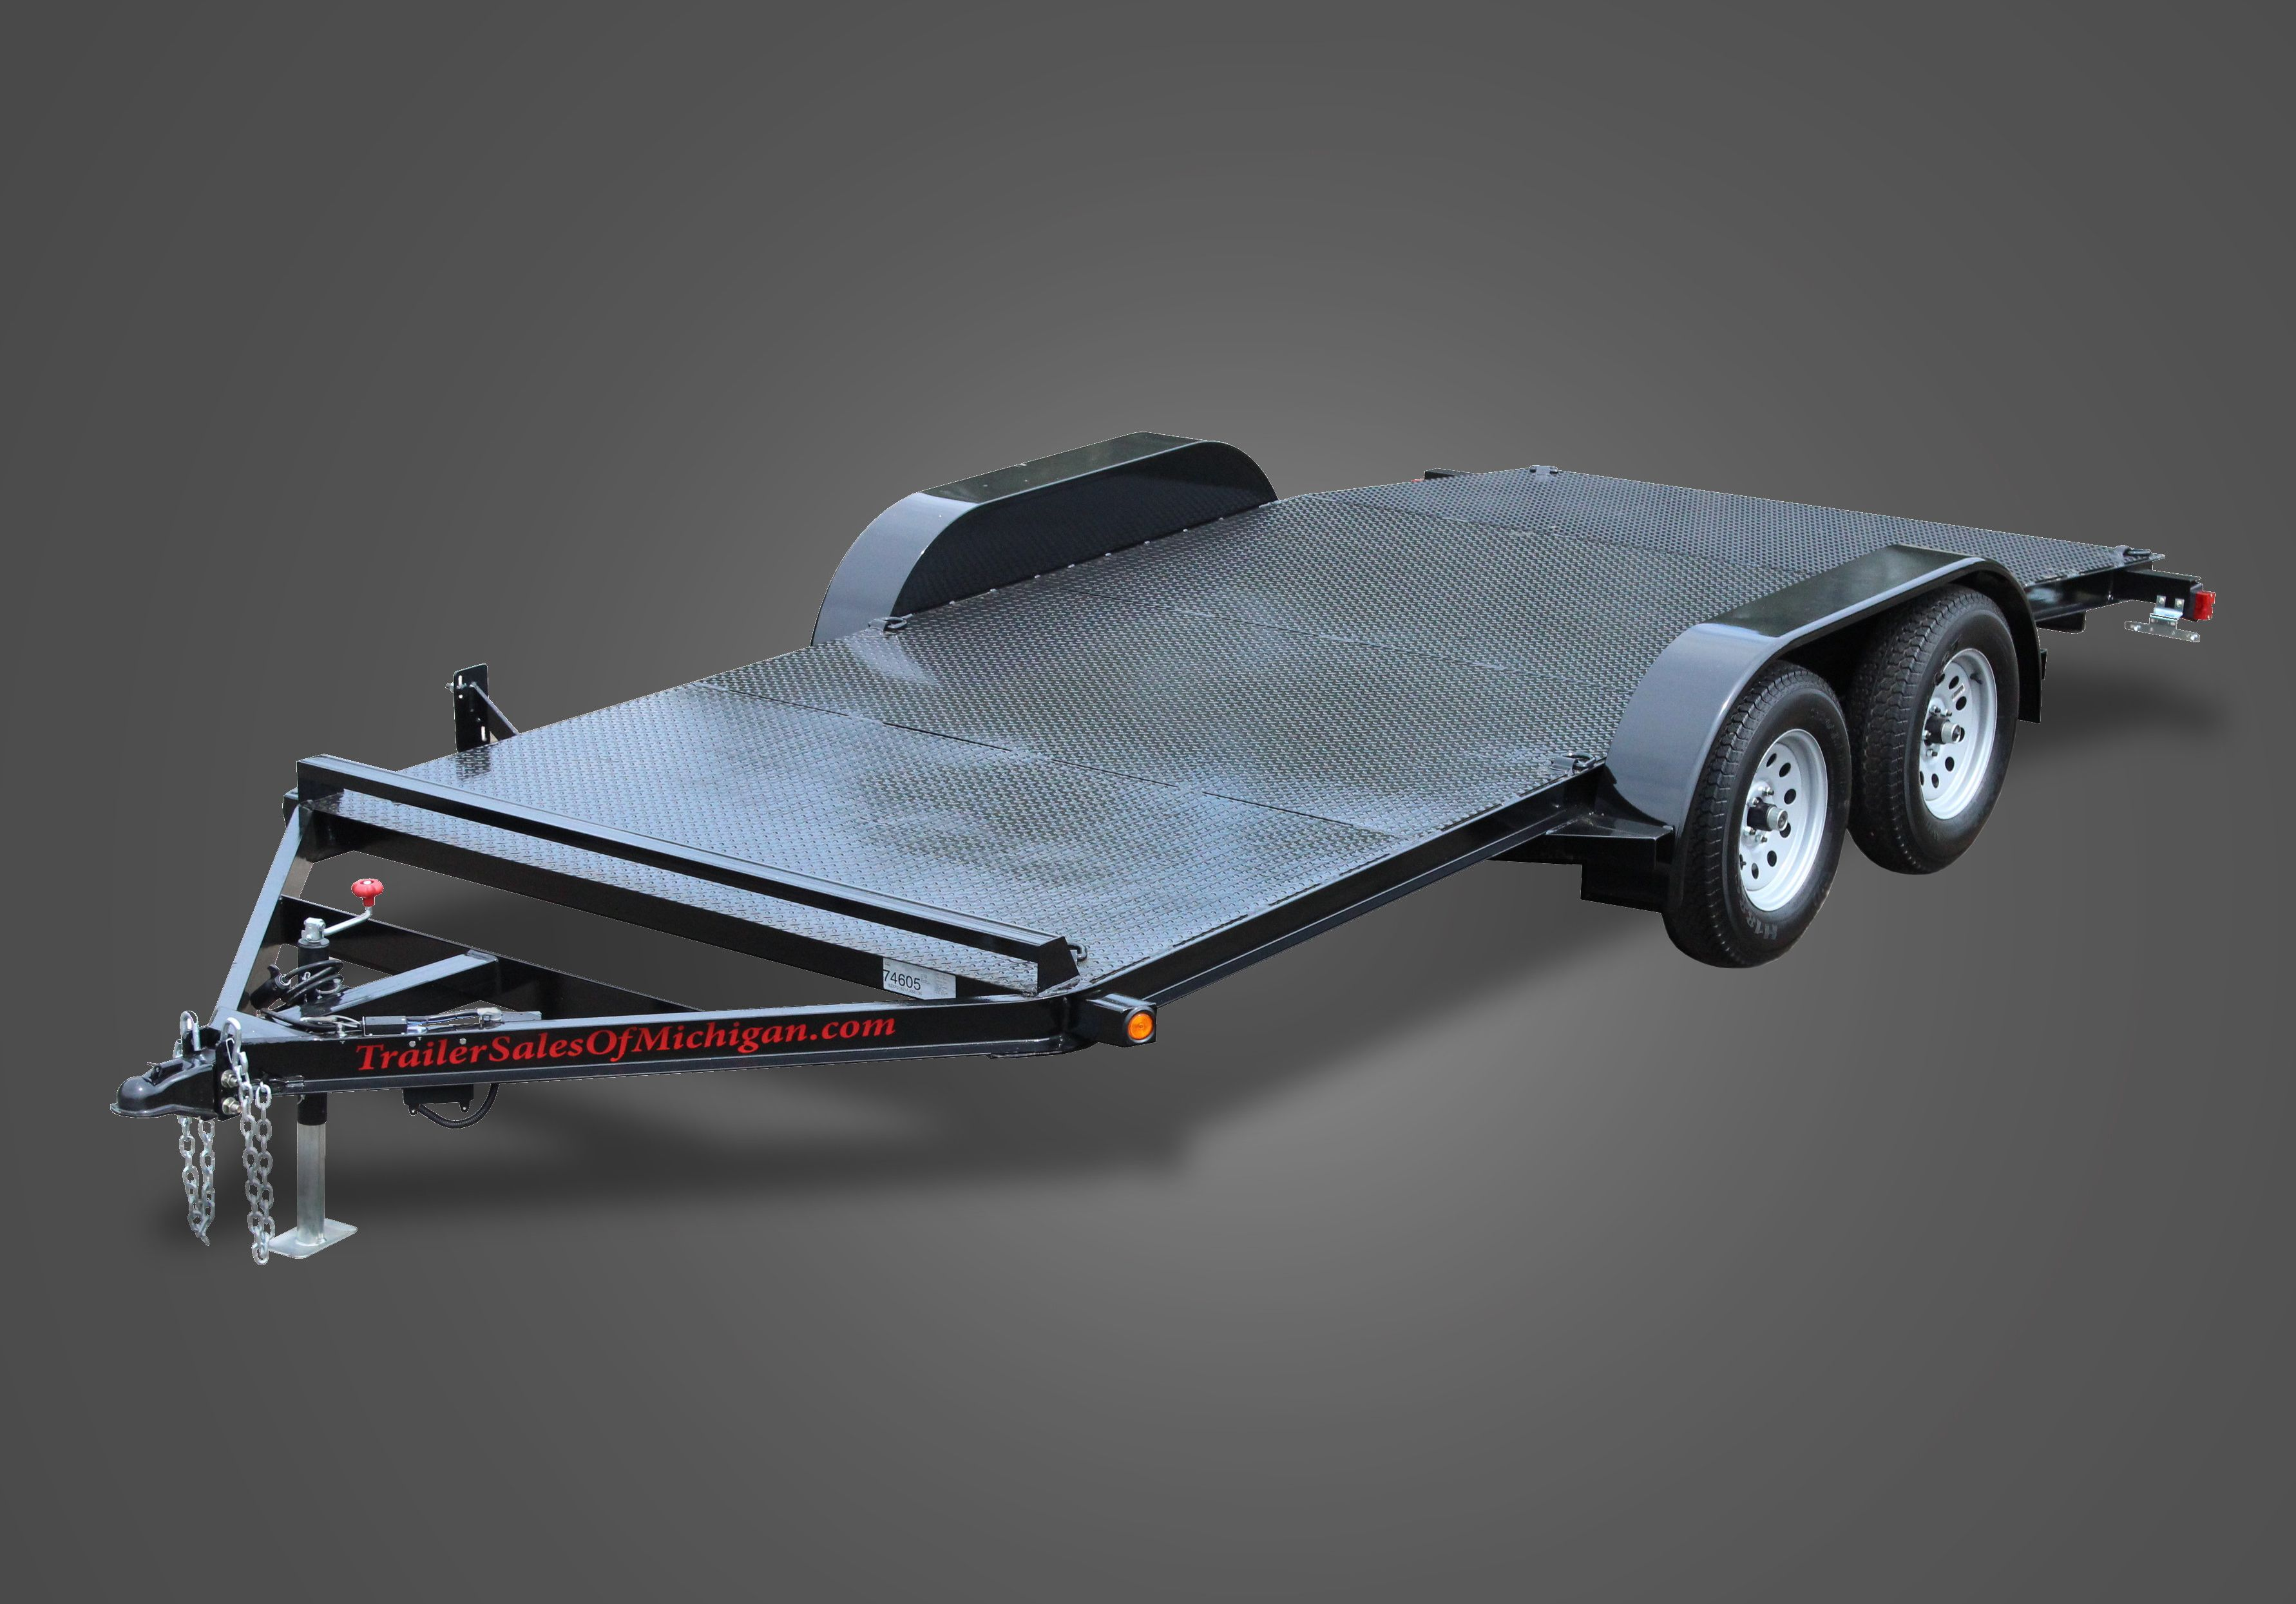 Diamond Floor Car Trailers by Trailer Sales of Michigan